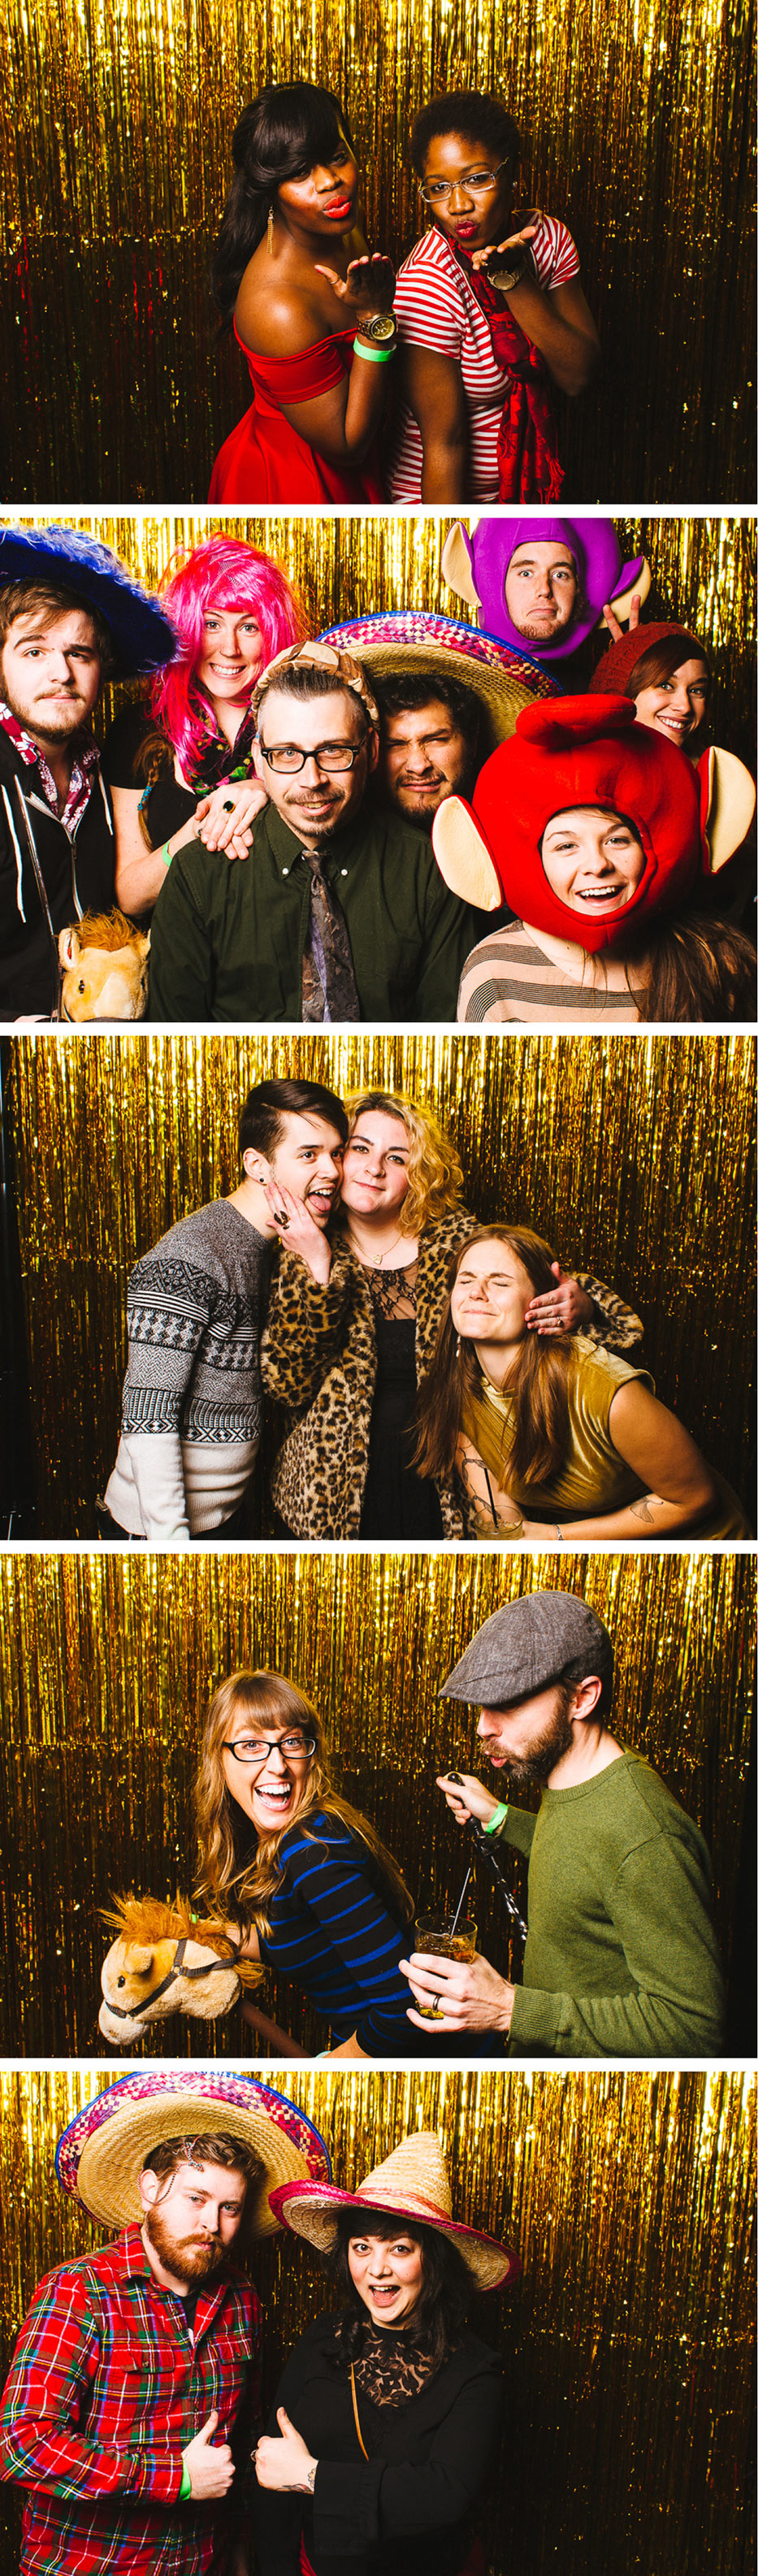 CK-Photo-Nashville-Photobooth-B5.jpg